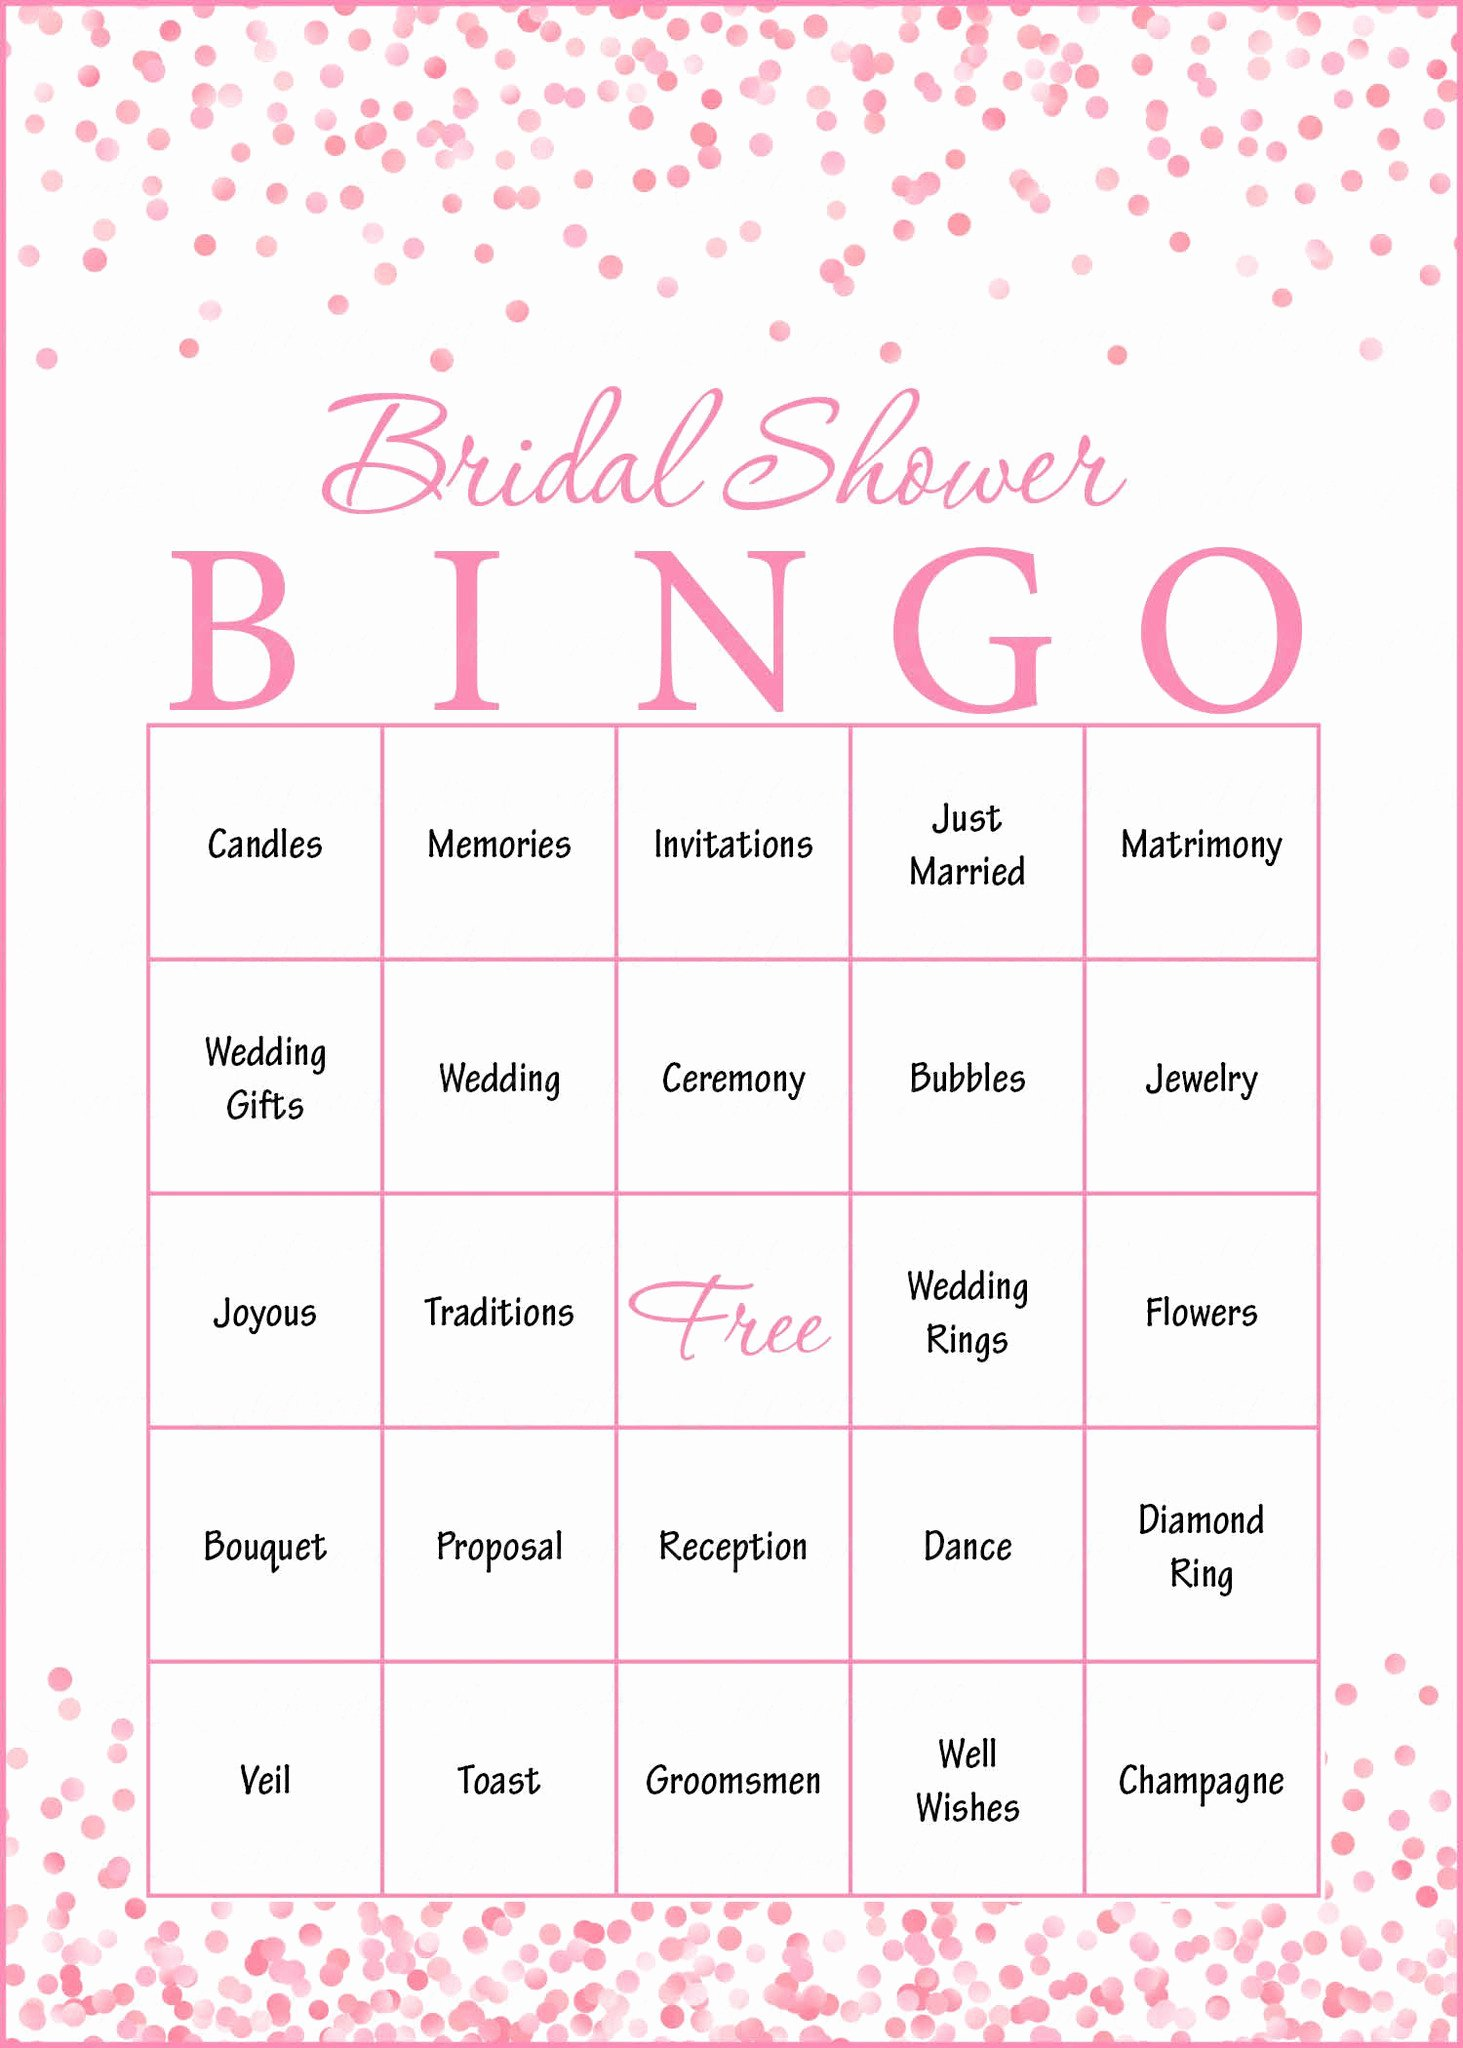 Bridal Shower Bingo Templates Best Of Pink Confetti Bridal Shower Game Download for Wedding